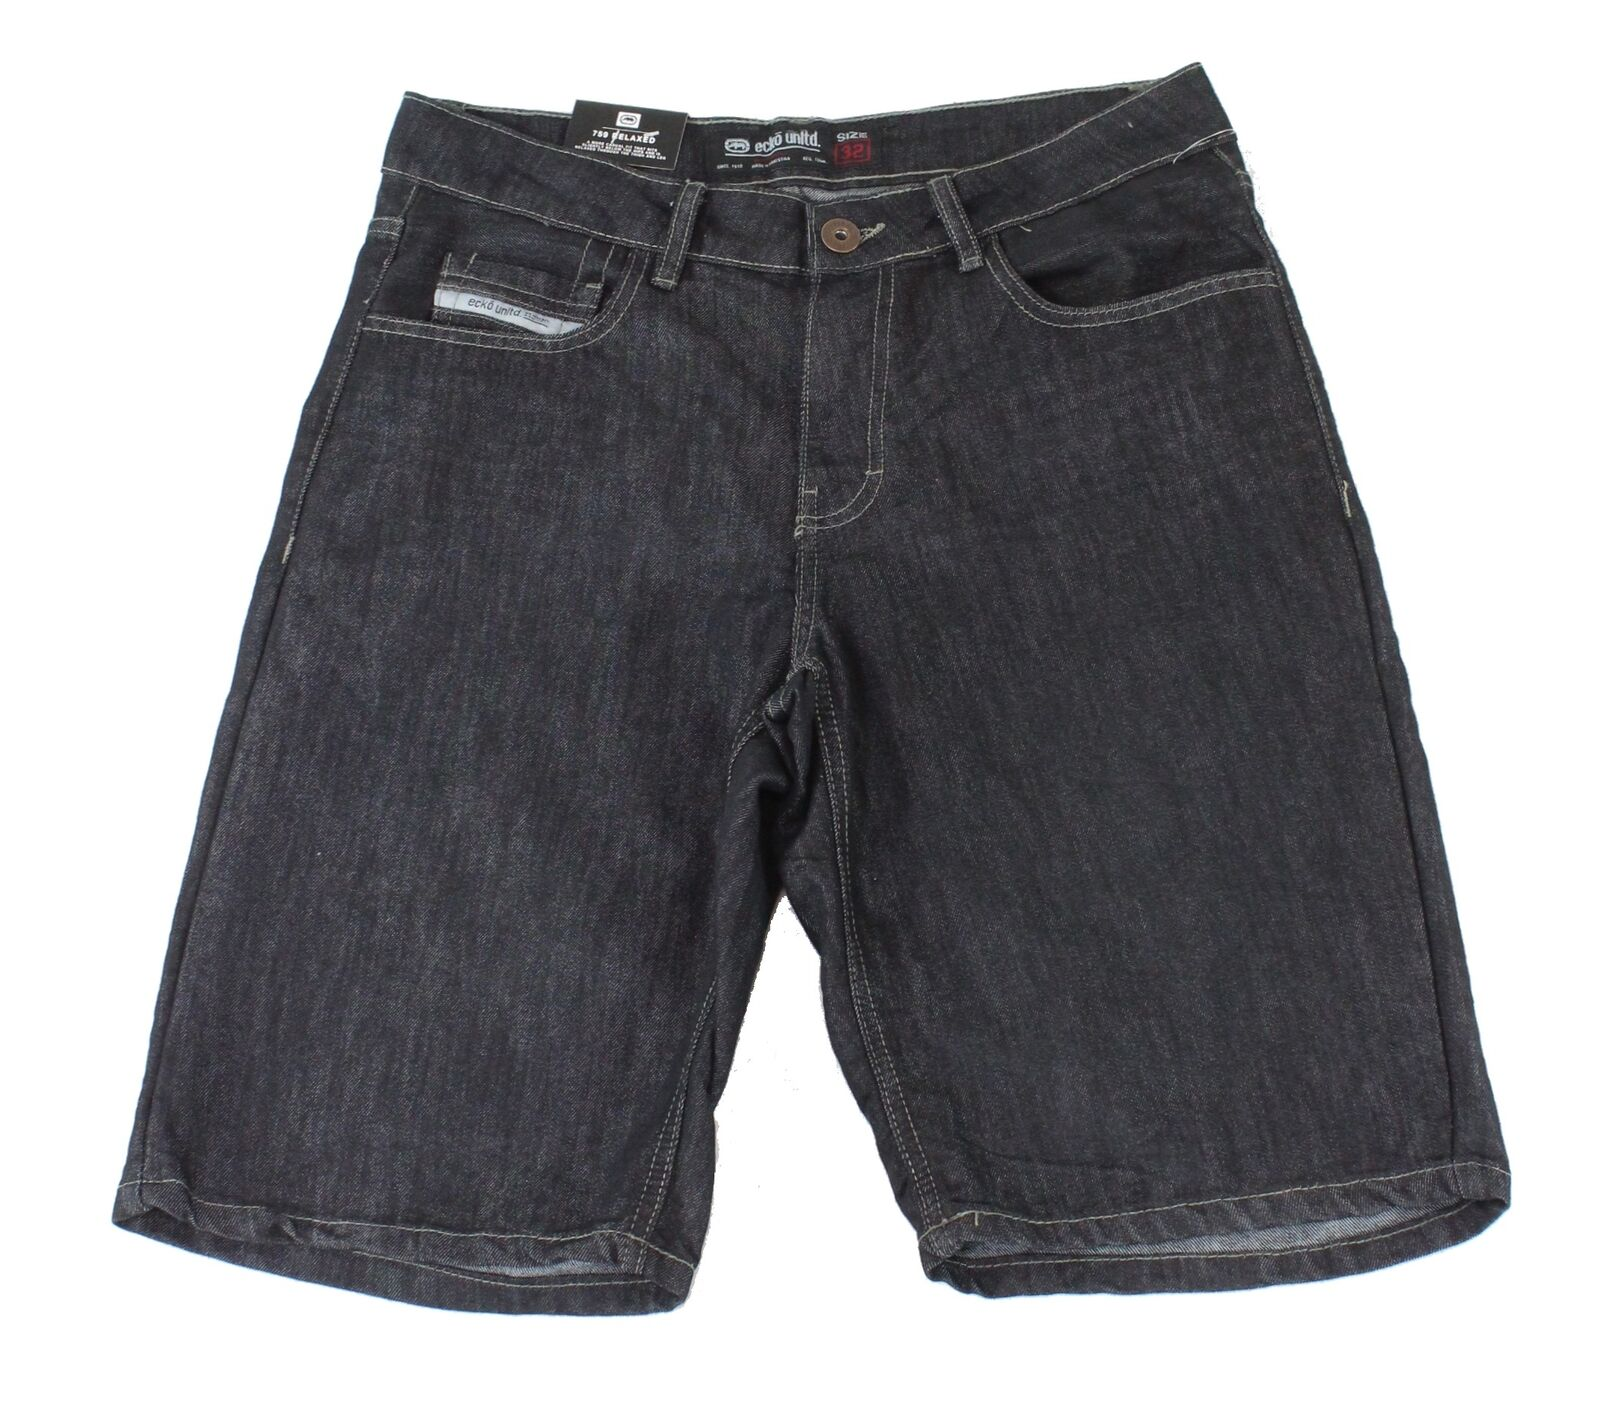 New-Ecko-Unltd-Mens-Shorts-Blue-Size-38-Denim-759-Relaxed-Fit-Embossed-48-148 thumbnail 1